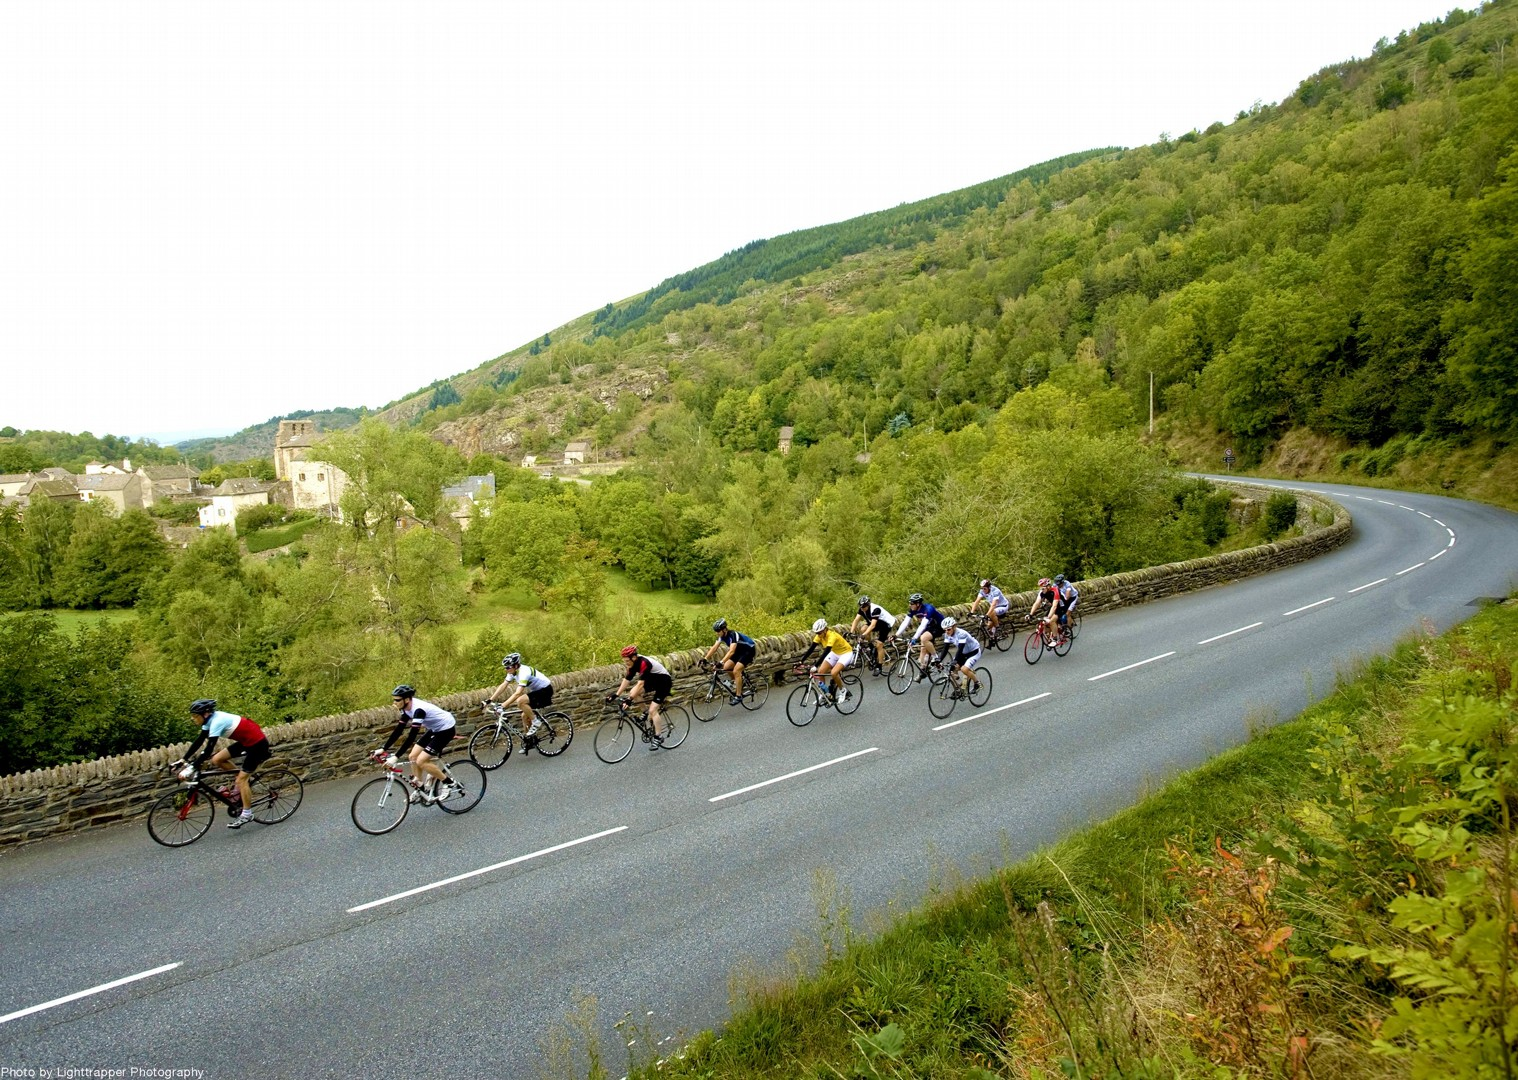 vosages-foothills-bike-saddle-skedaddle-cycling-road.jpg - NEW! France - Alsace, Burgundy and Beaujolais - Road Cycling